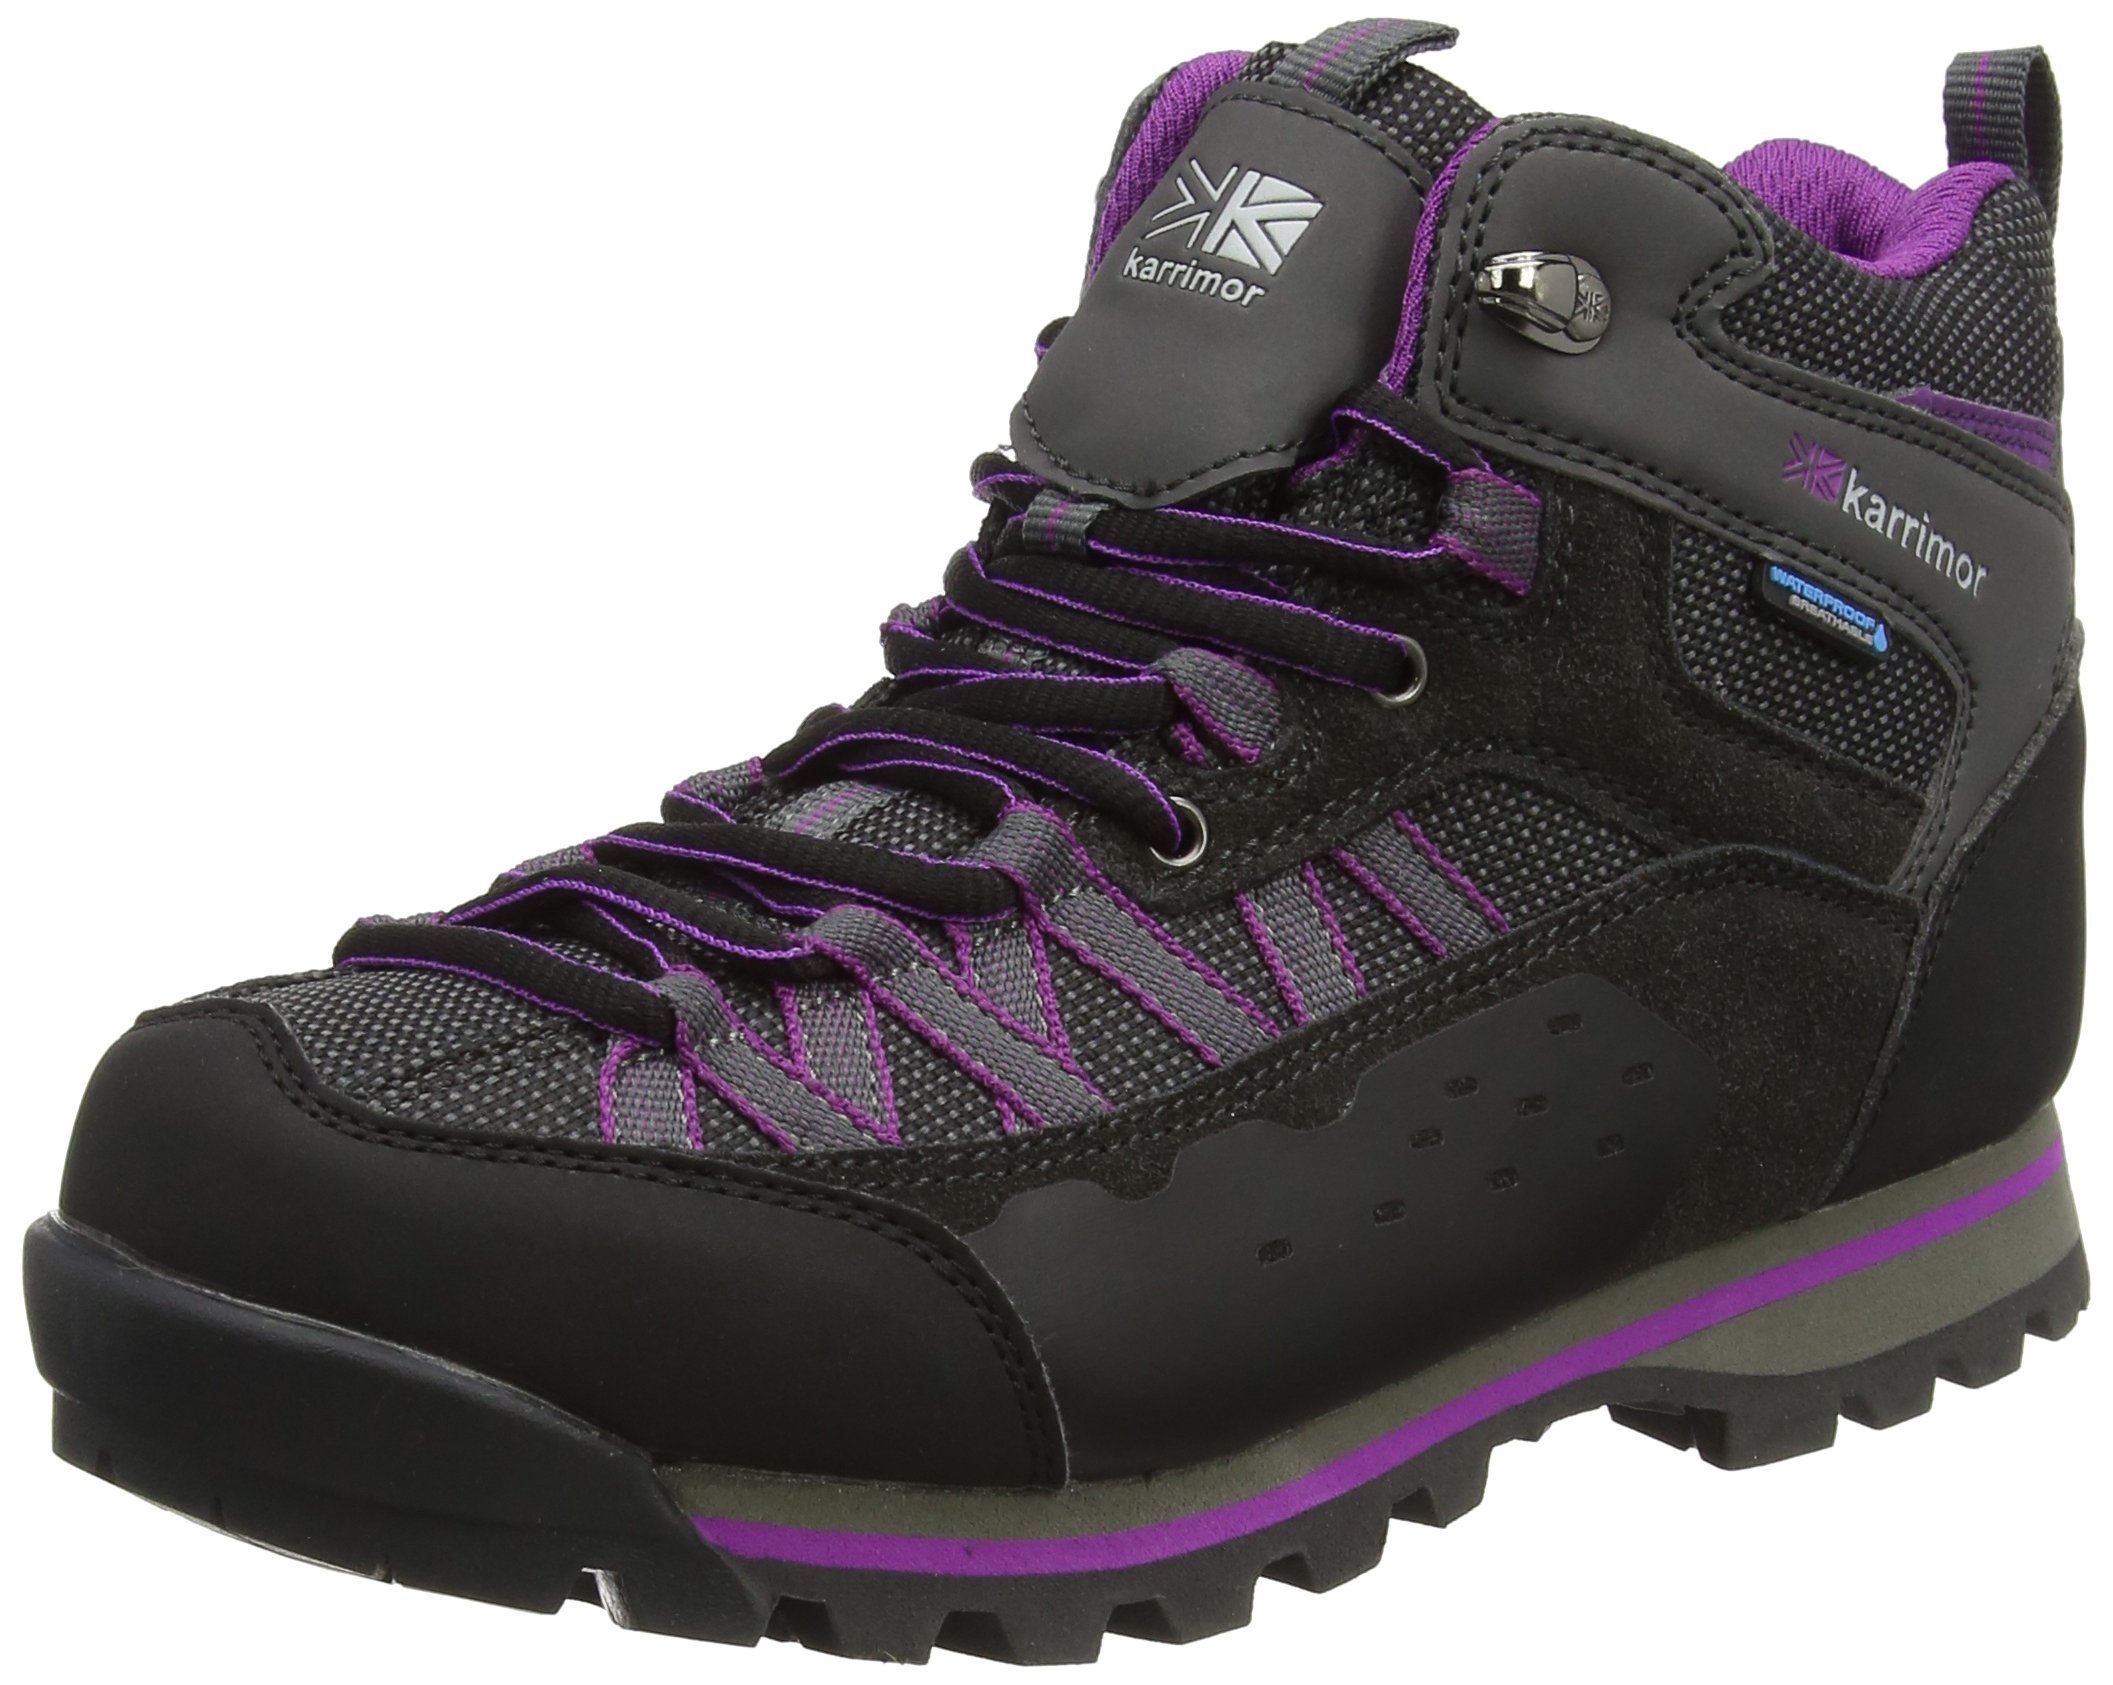 81UEFOIkDvL - Spike Mid 2 Ladies weathertite